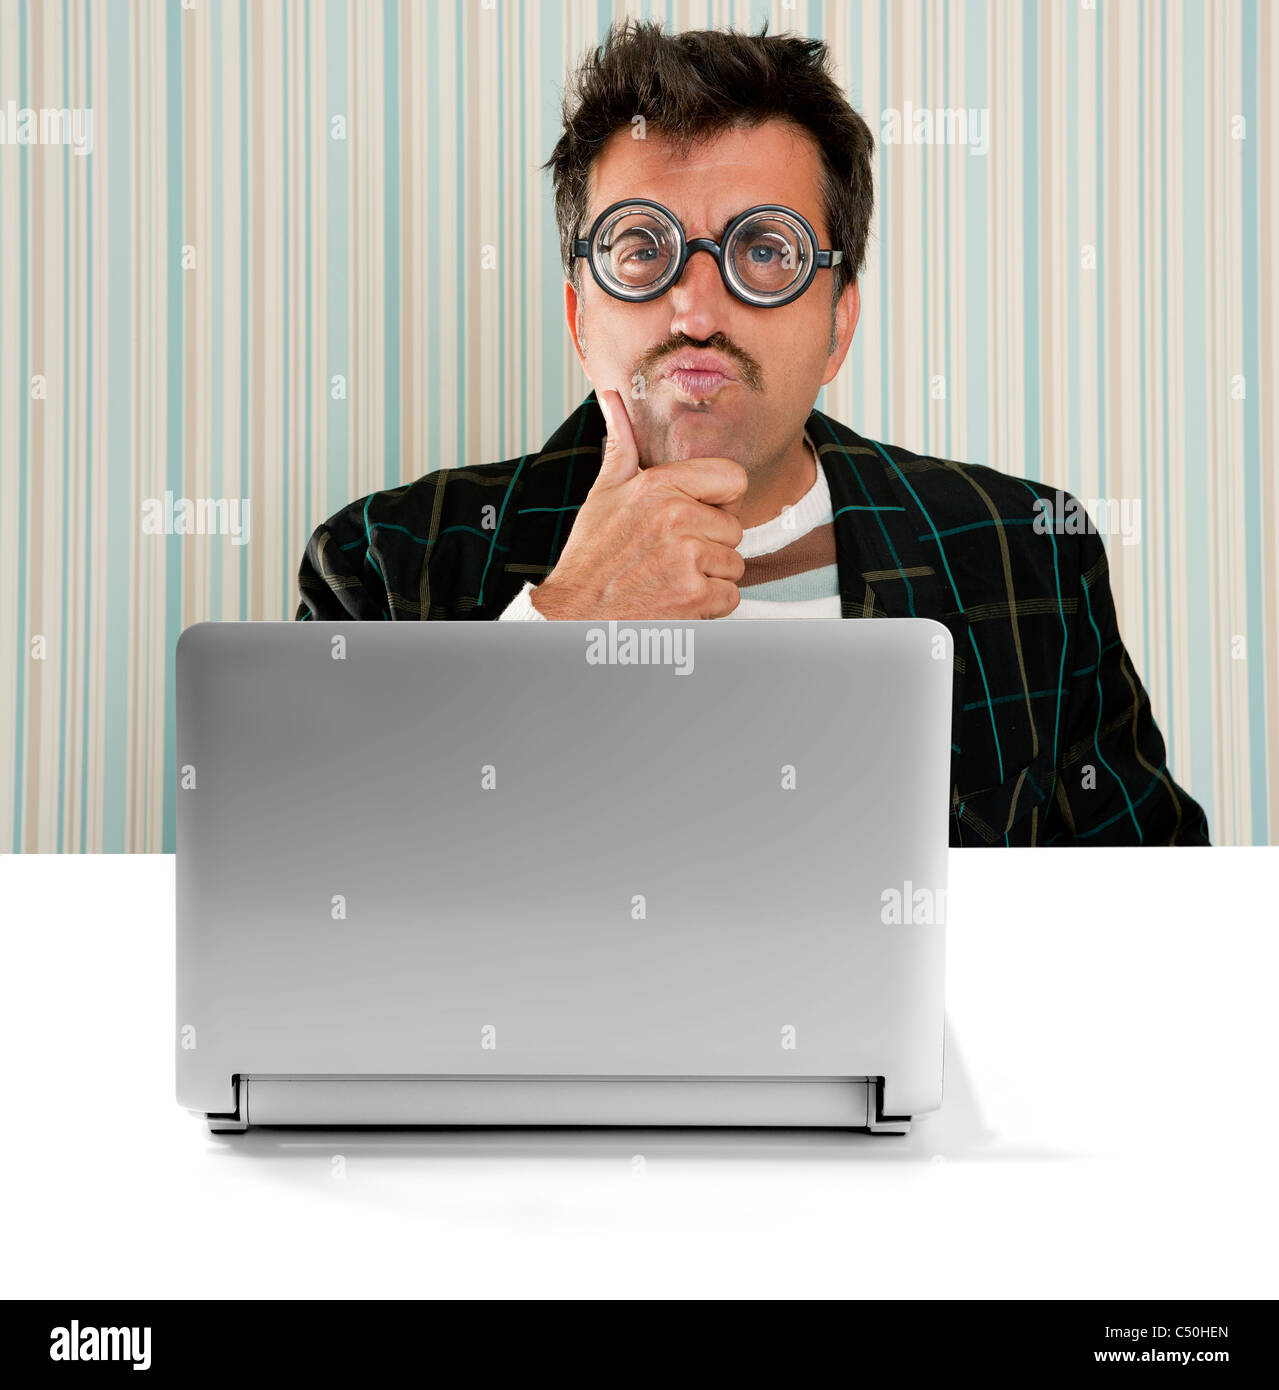 Nerd pensive man glasses silly expression laptop computer thinking a solution Stock Photo